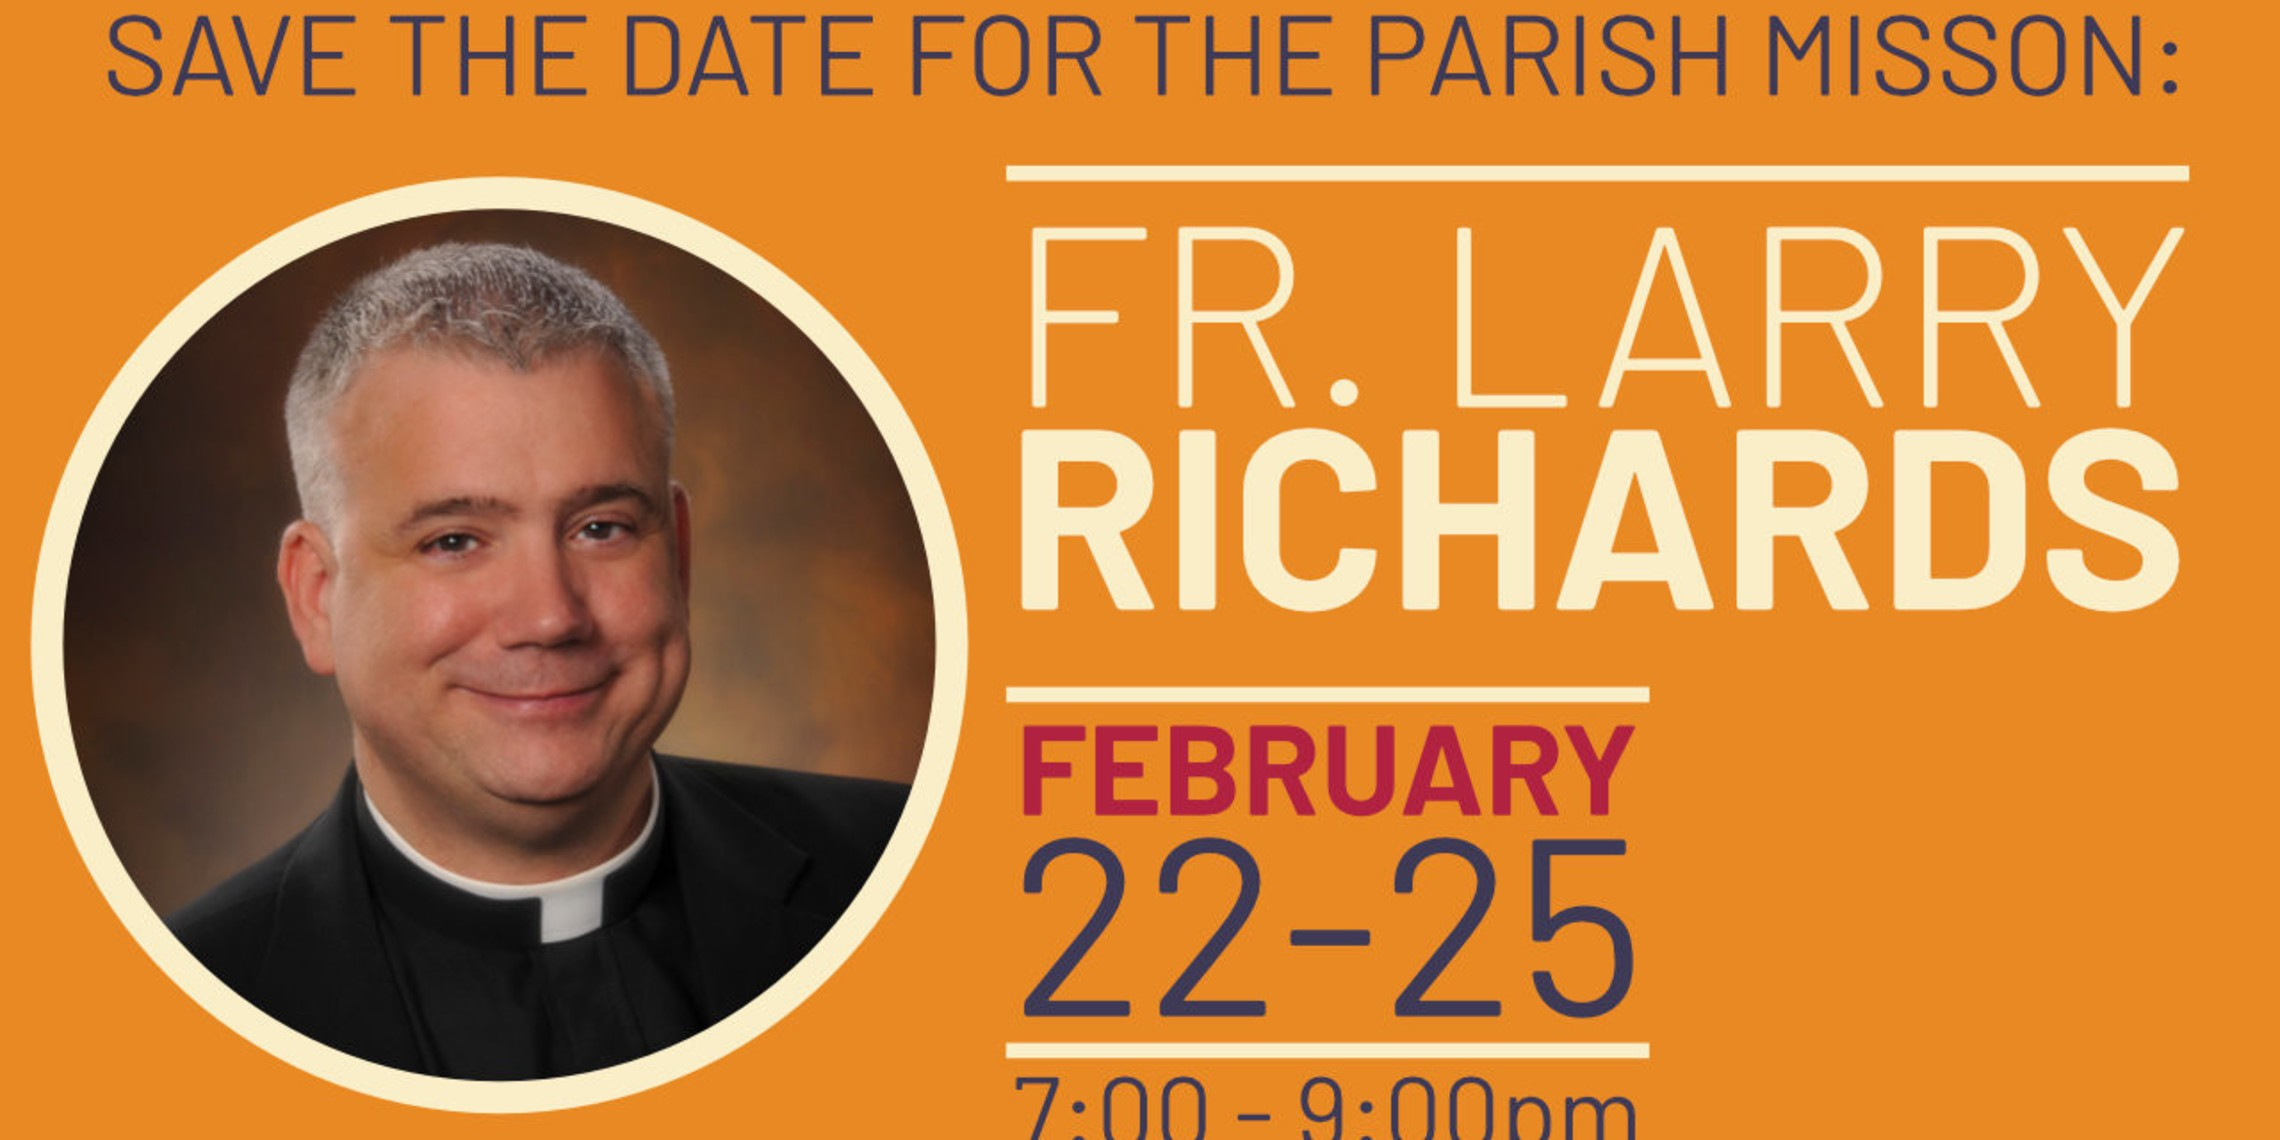 Fr Larry Richards Save the Date